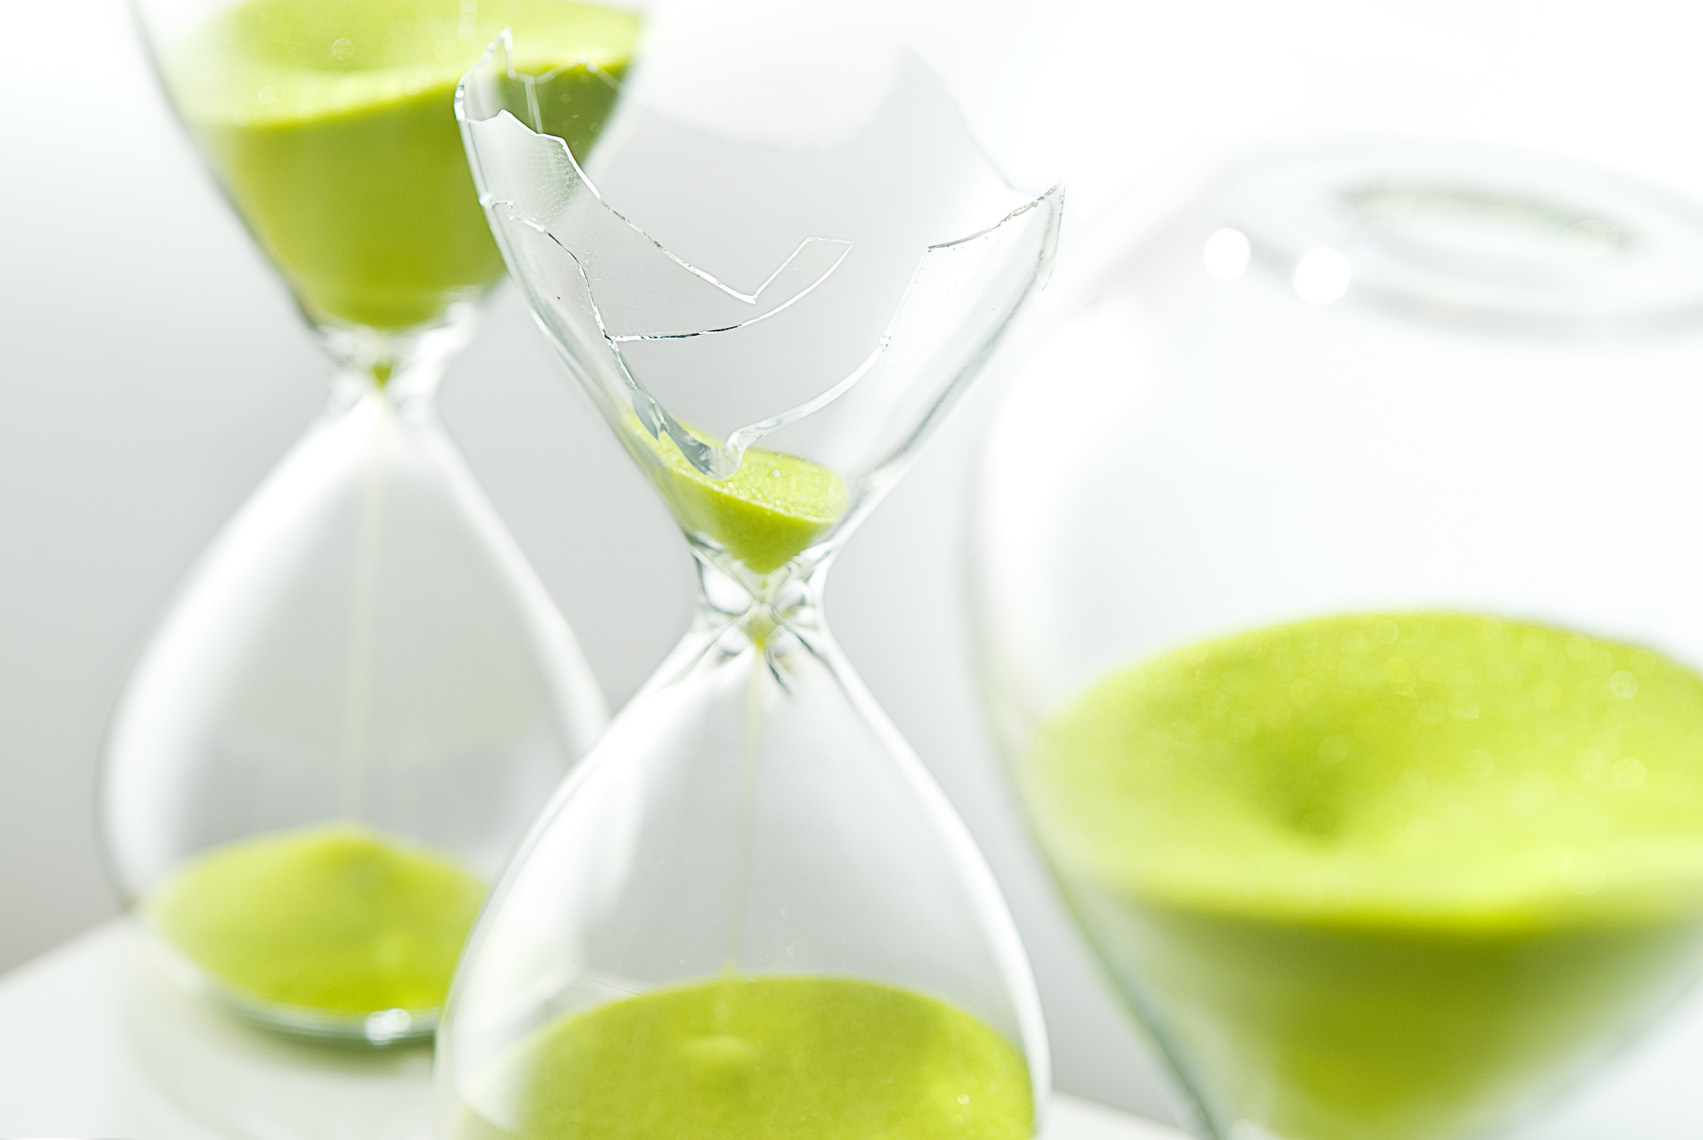 Green_CB2_Hourglass_Broken